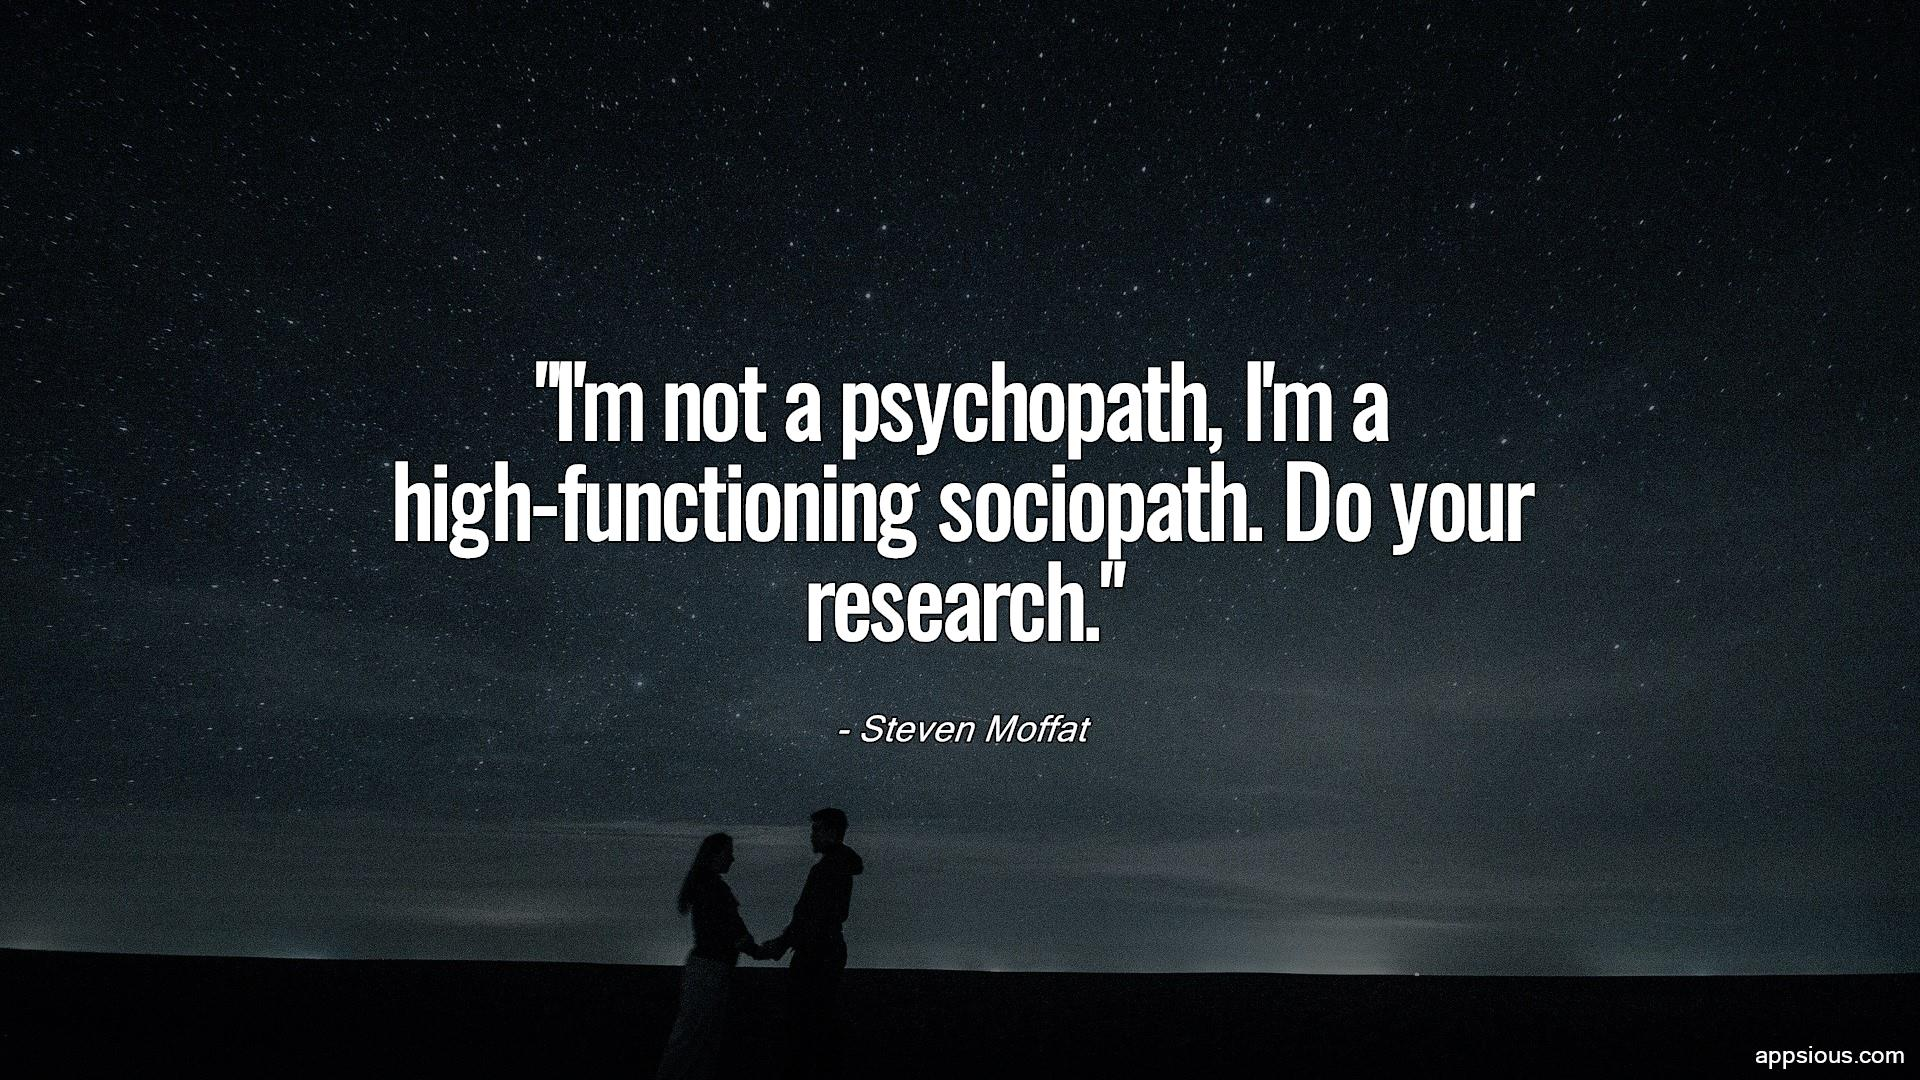 I'm not a psychopath, I'm a high-functioning sociopath. Do your research.